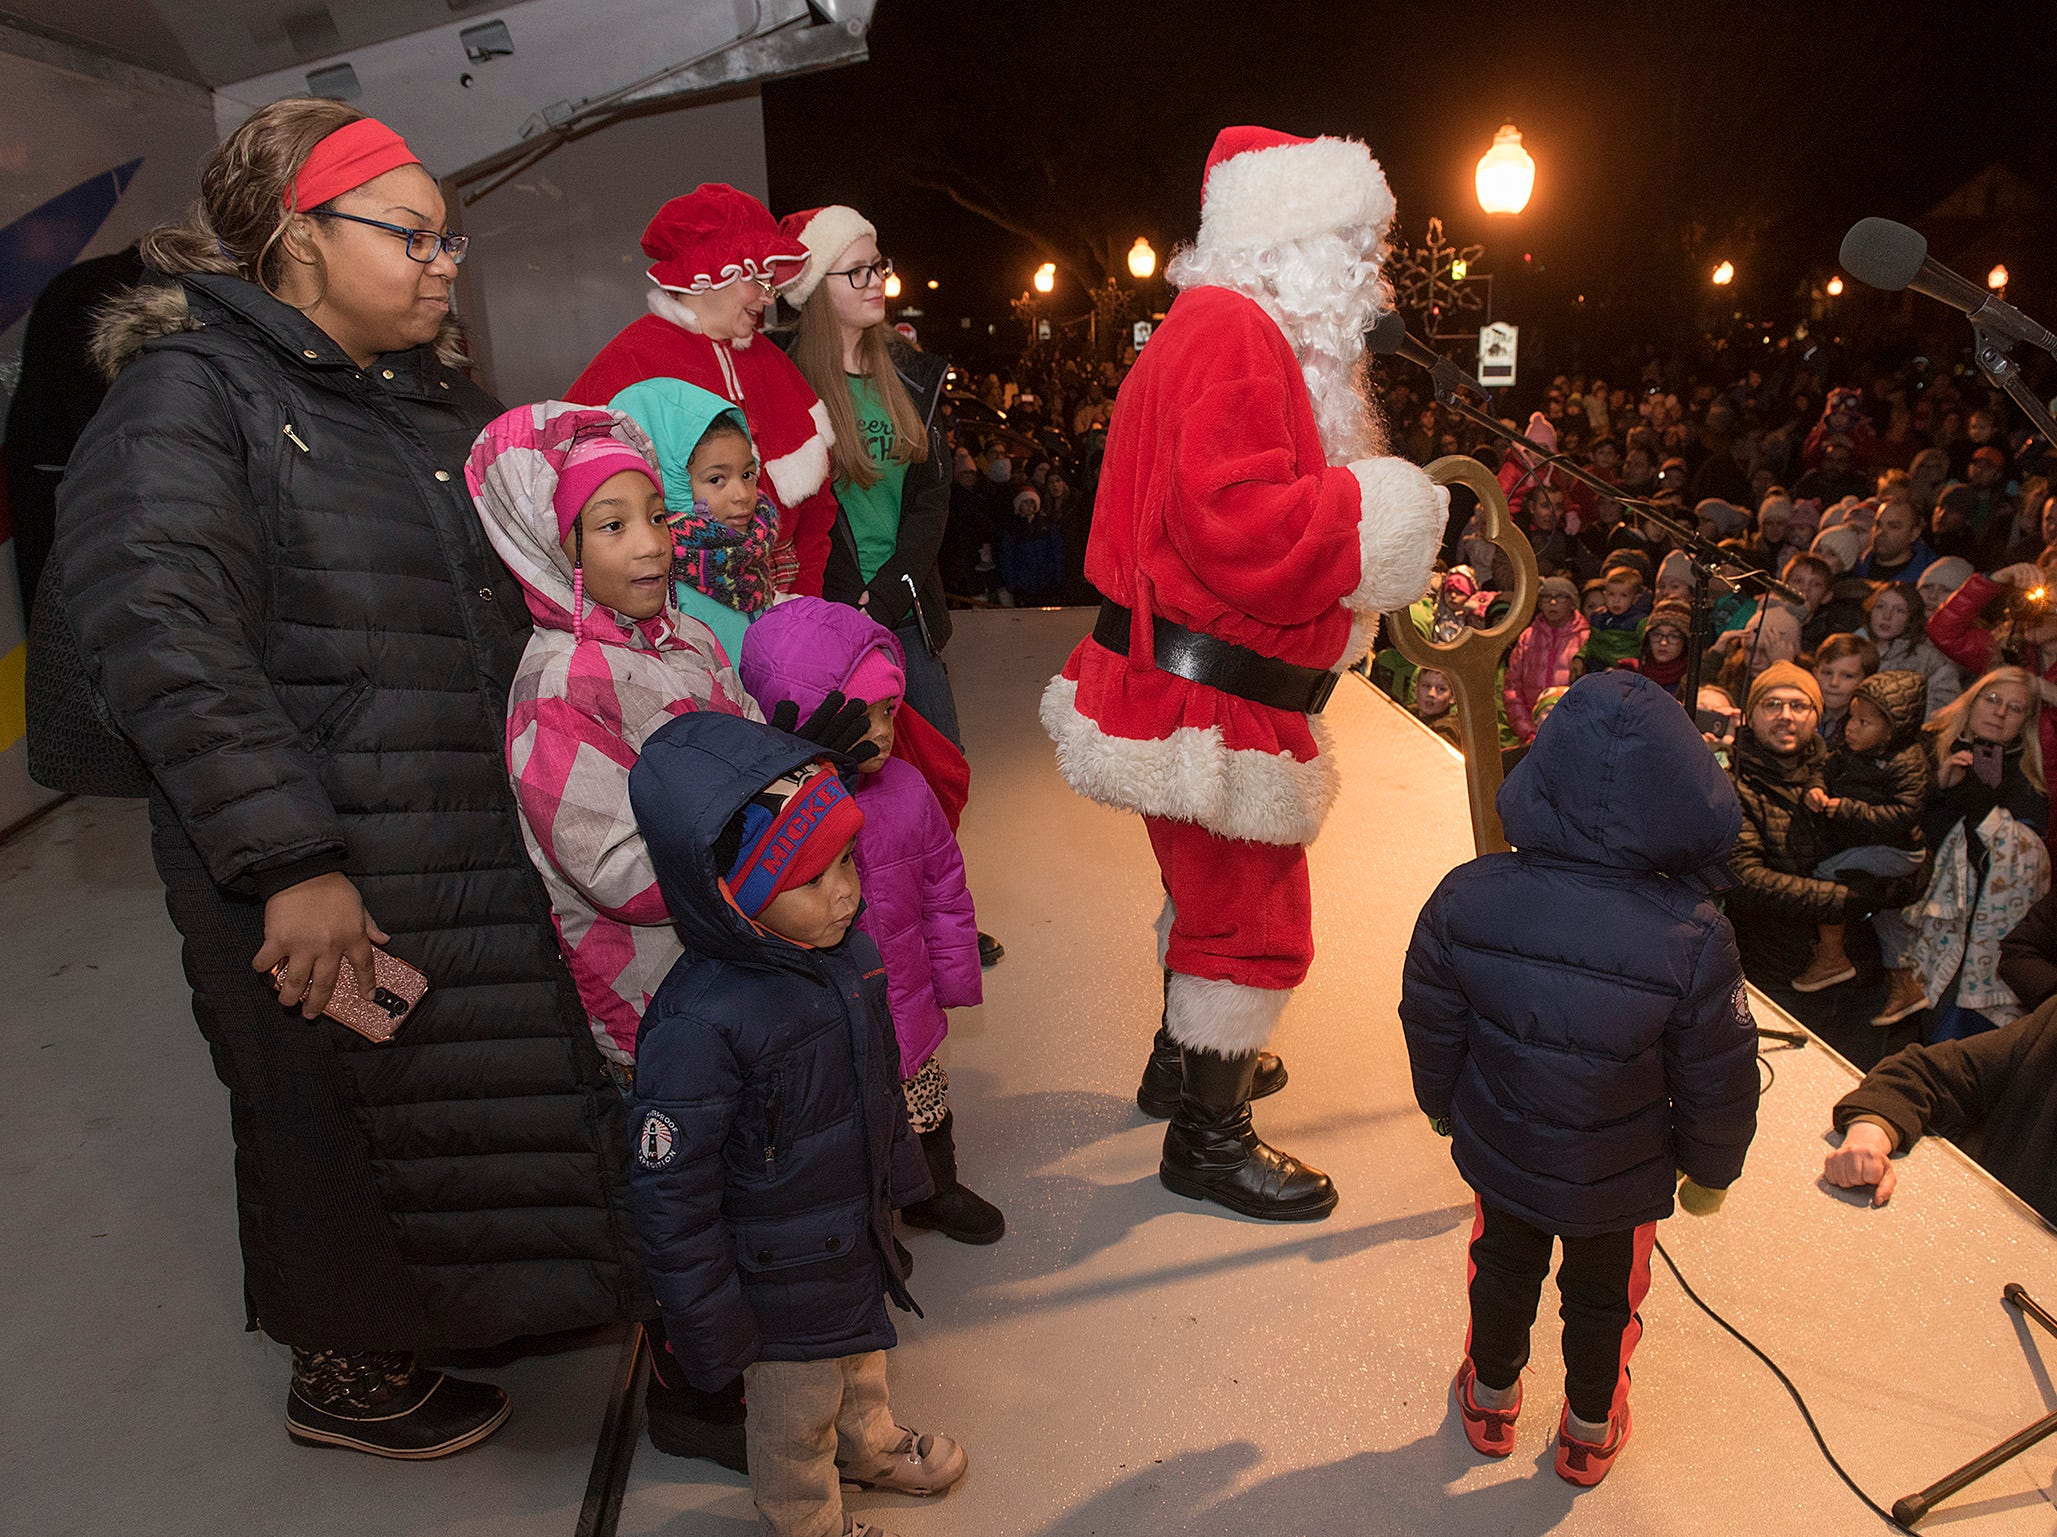 Santa speaks to the crowd. Temeni Woods and kids Skylie, Taelyn, Olivia, Kayson, and Kaymon help out.